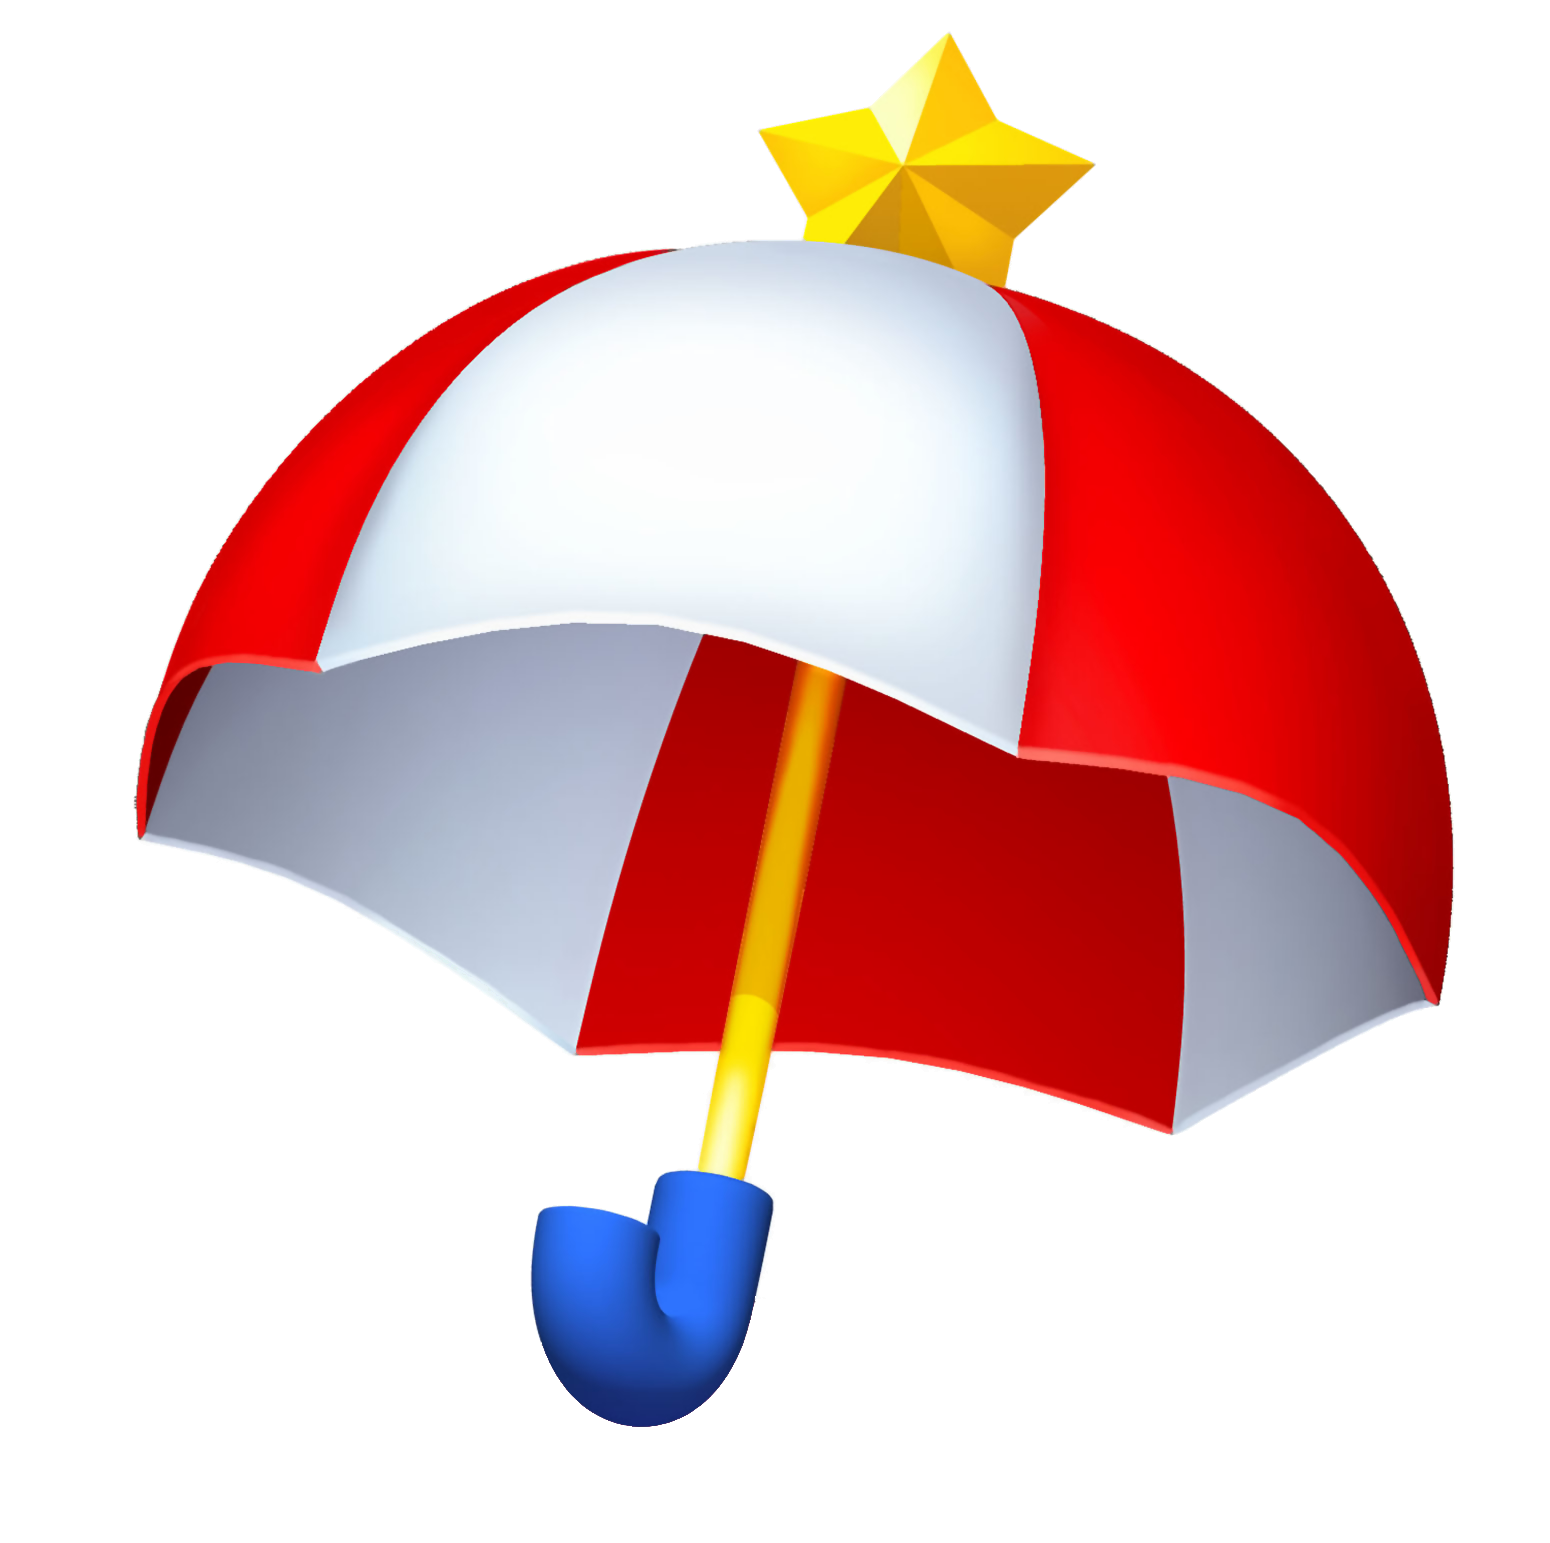 Parasol enemy kirby wiki. Fight clipart quarrelsome